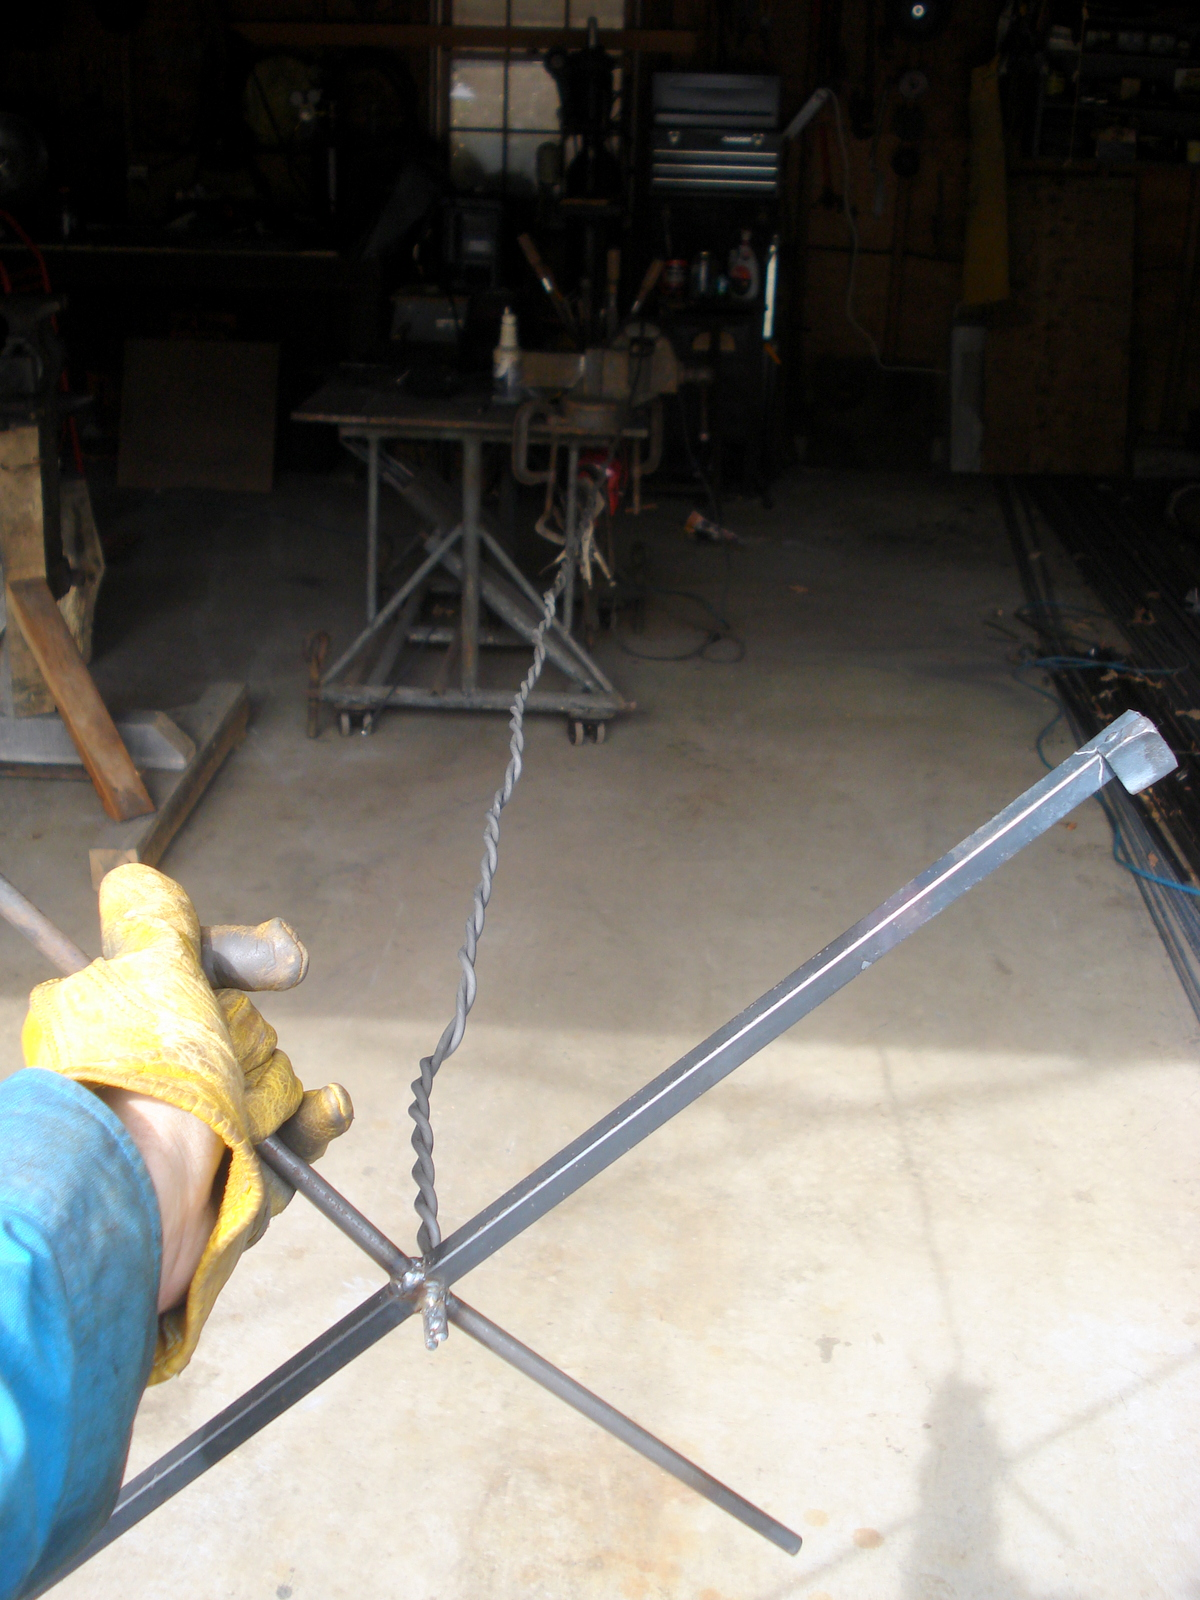 A jig used to create metal rope, two pieces of round bar were welded together at the ends and that X was used to wind them up.